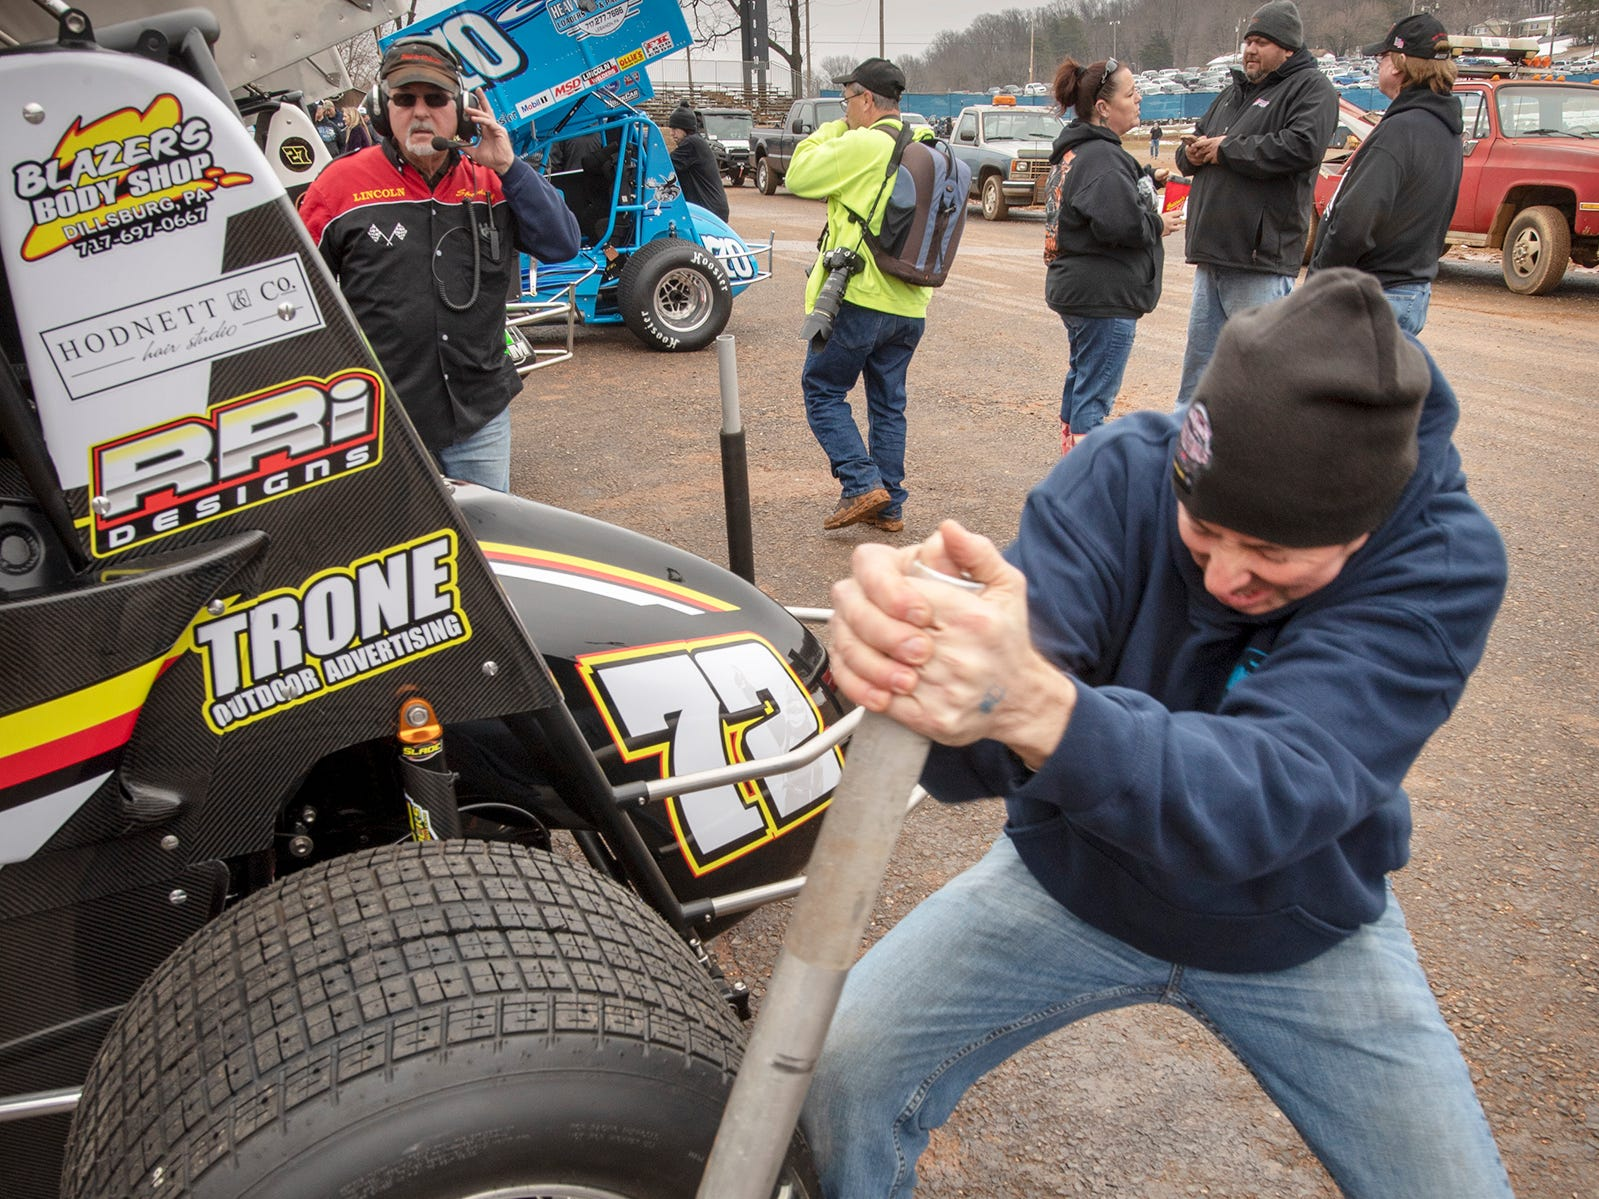 Pit crewman Ron Smith tightens a wheel on the 72 car driven by Ryan Smith during the Lincoln Speedway Ice Breaker 30 on Sunday near Abbottstown.